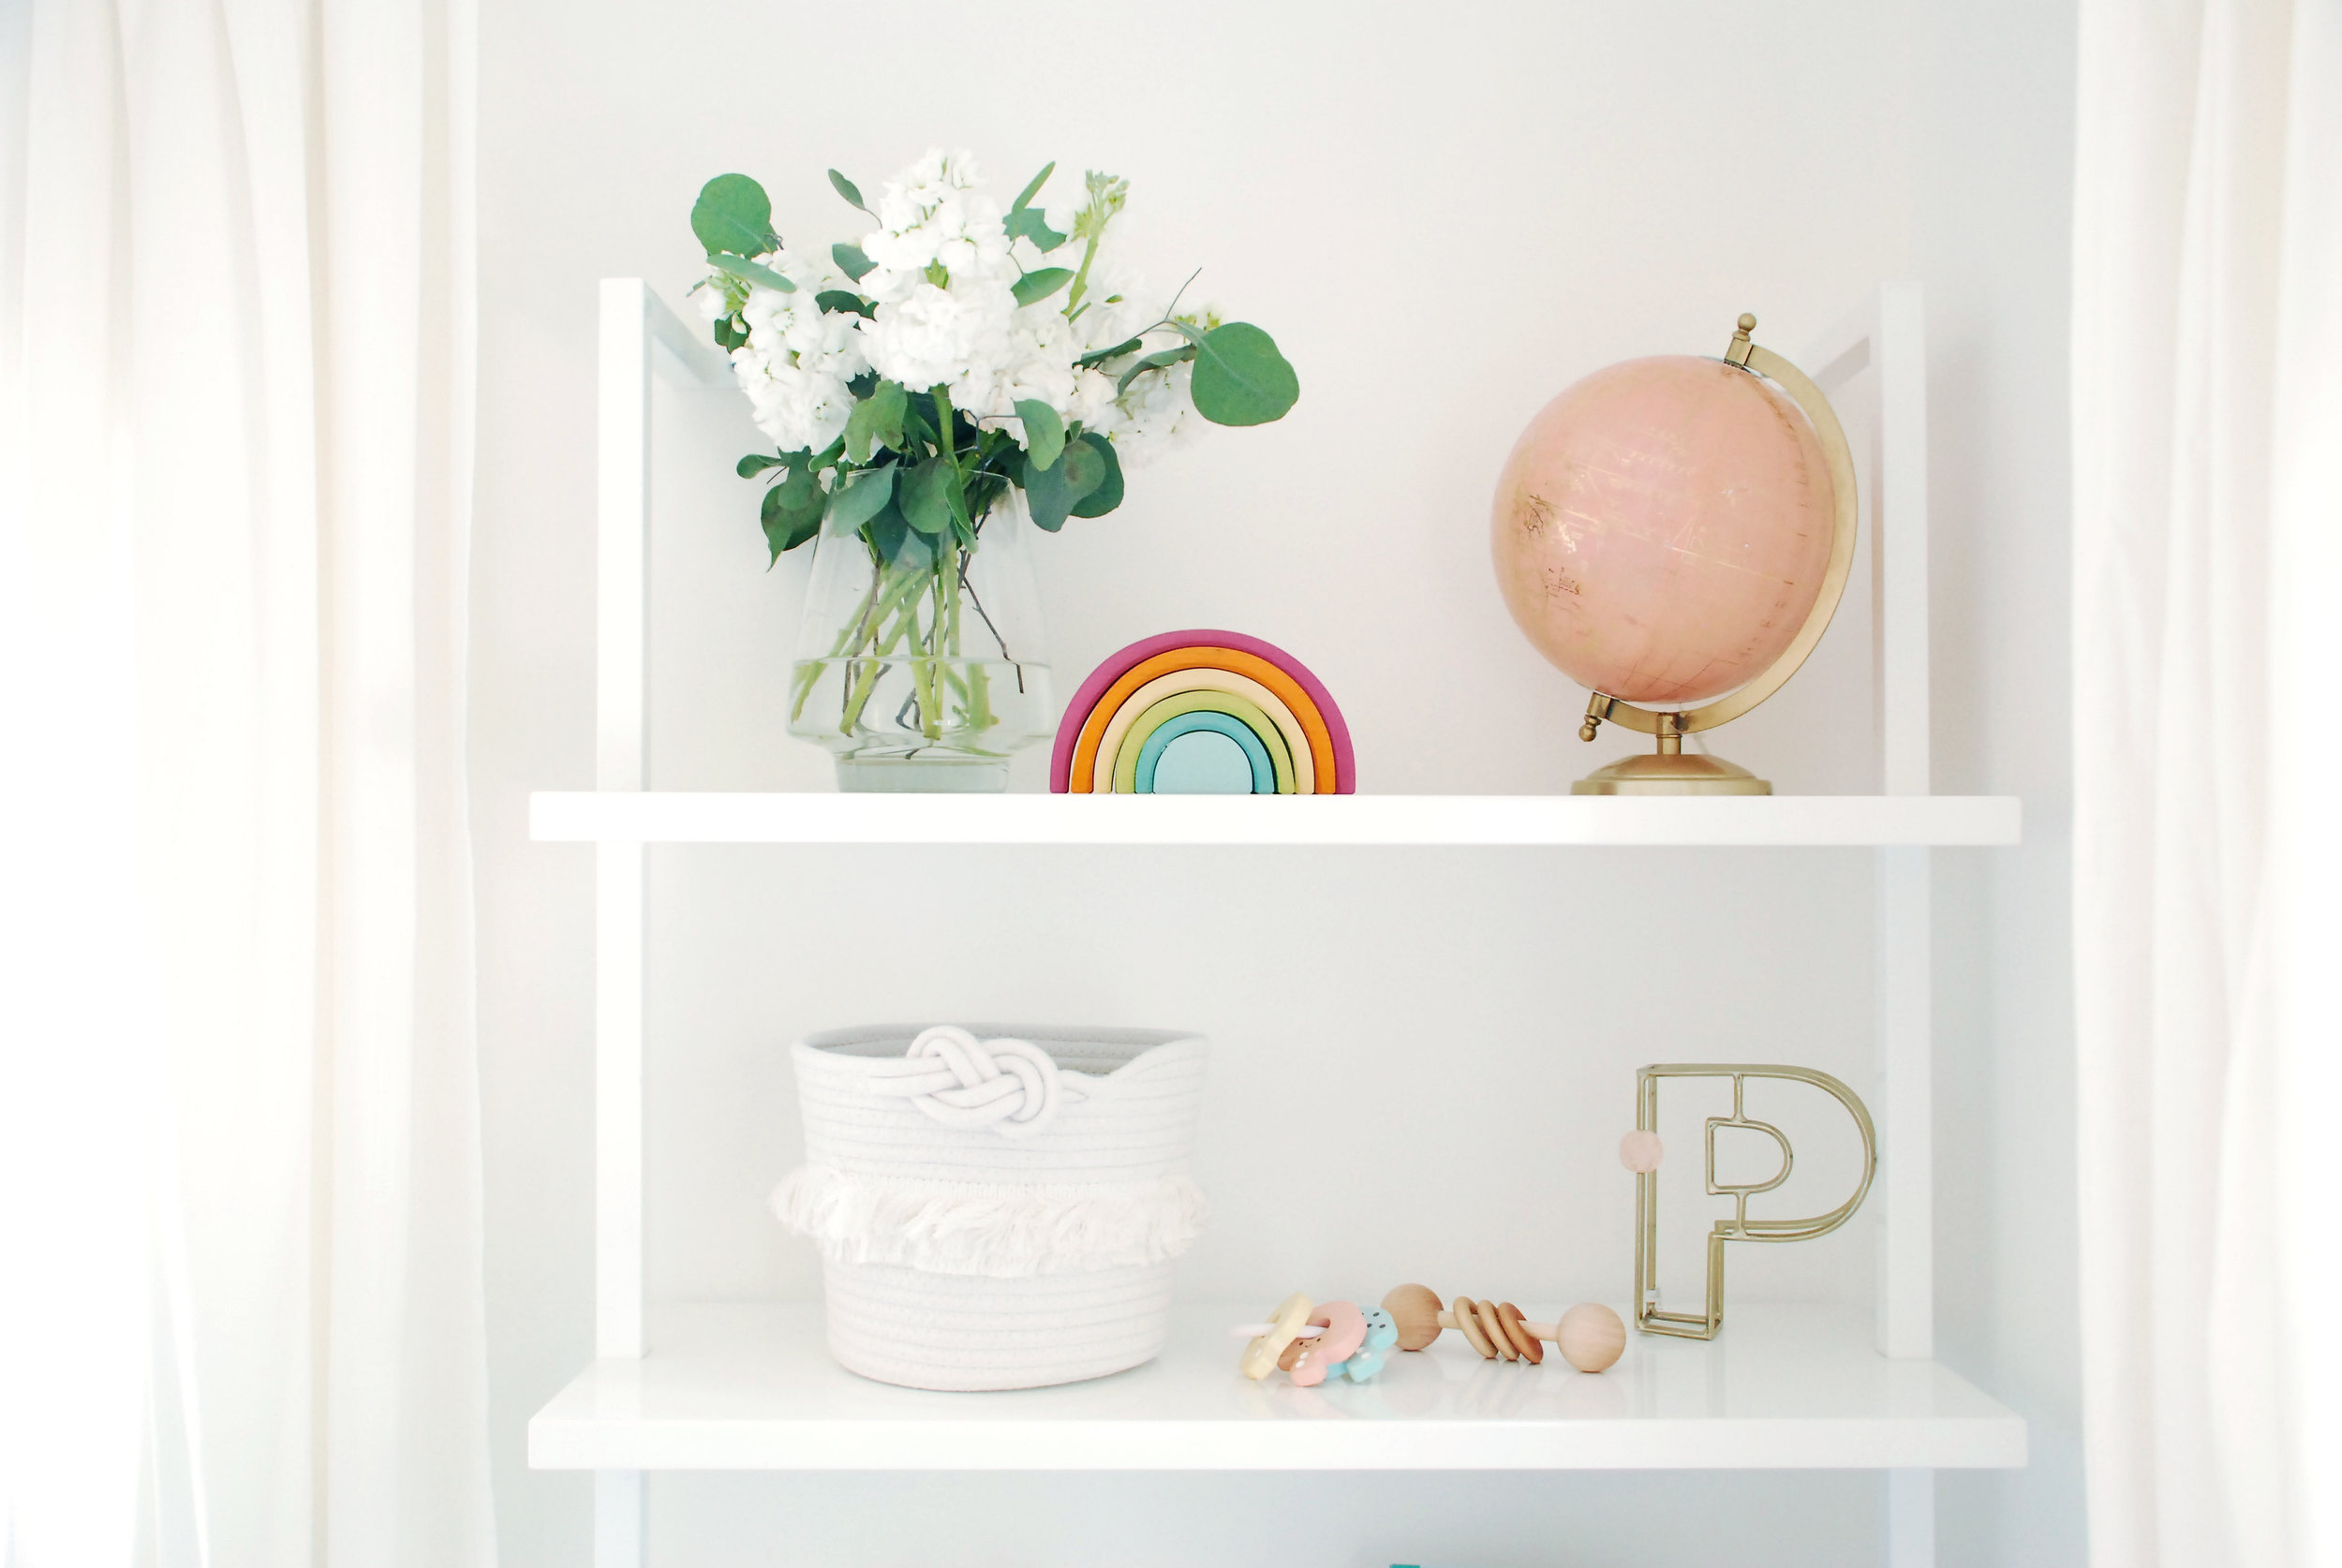 Bookshelf styling in nursery by Stay Interiors